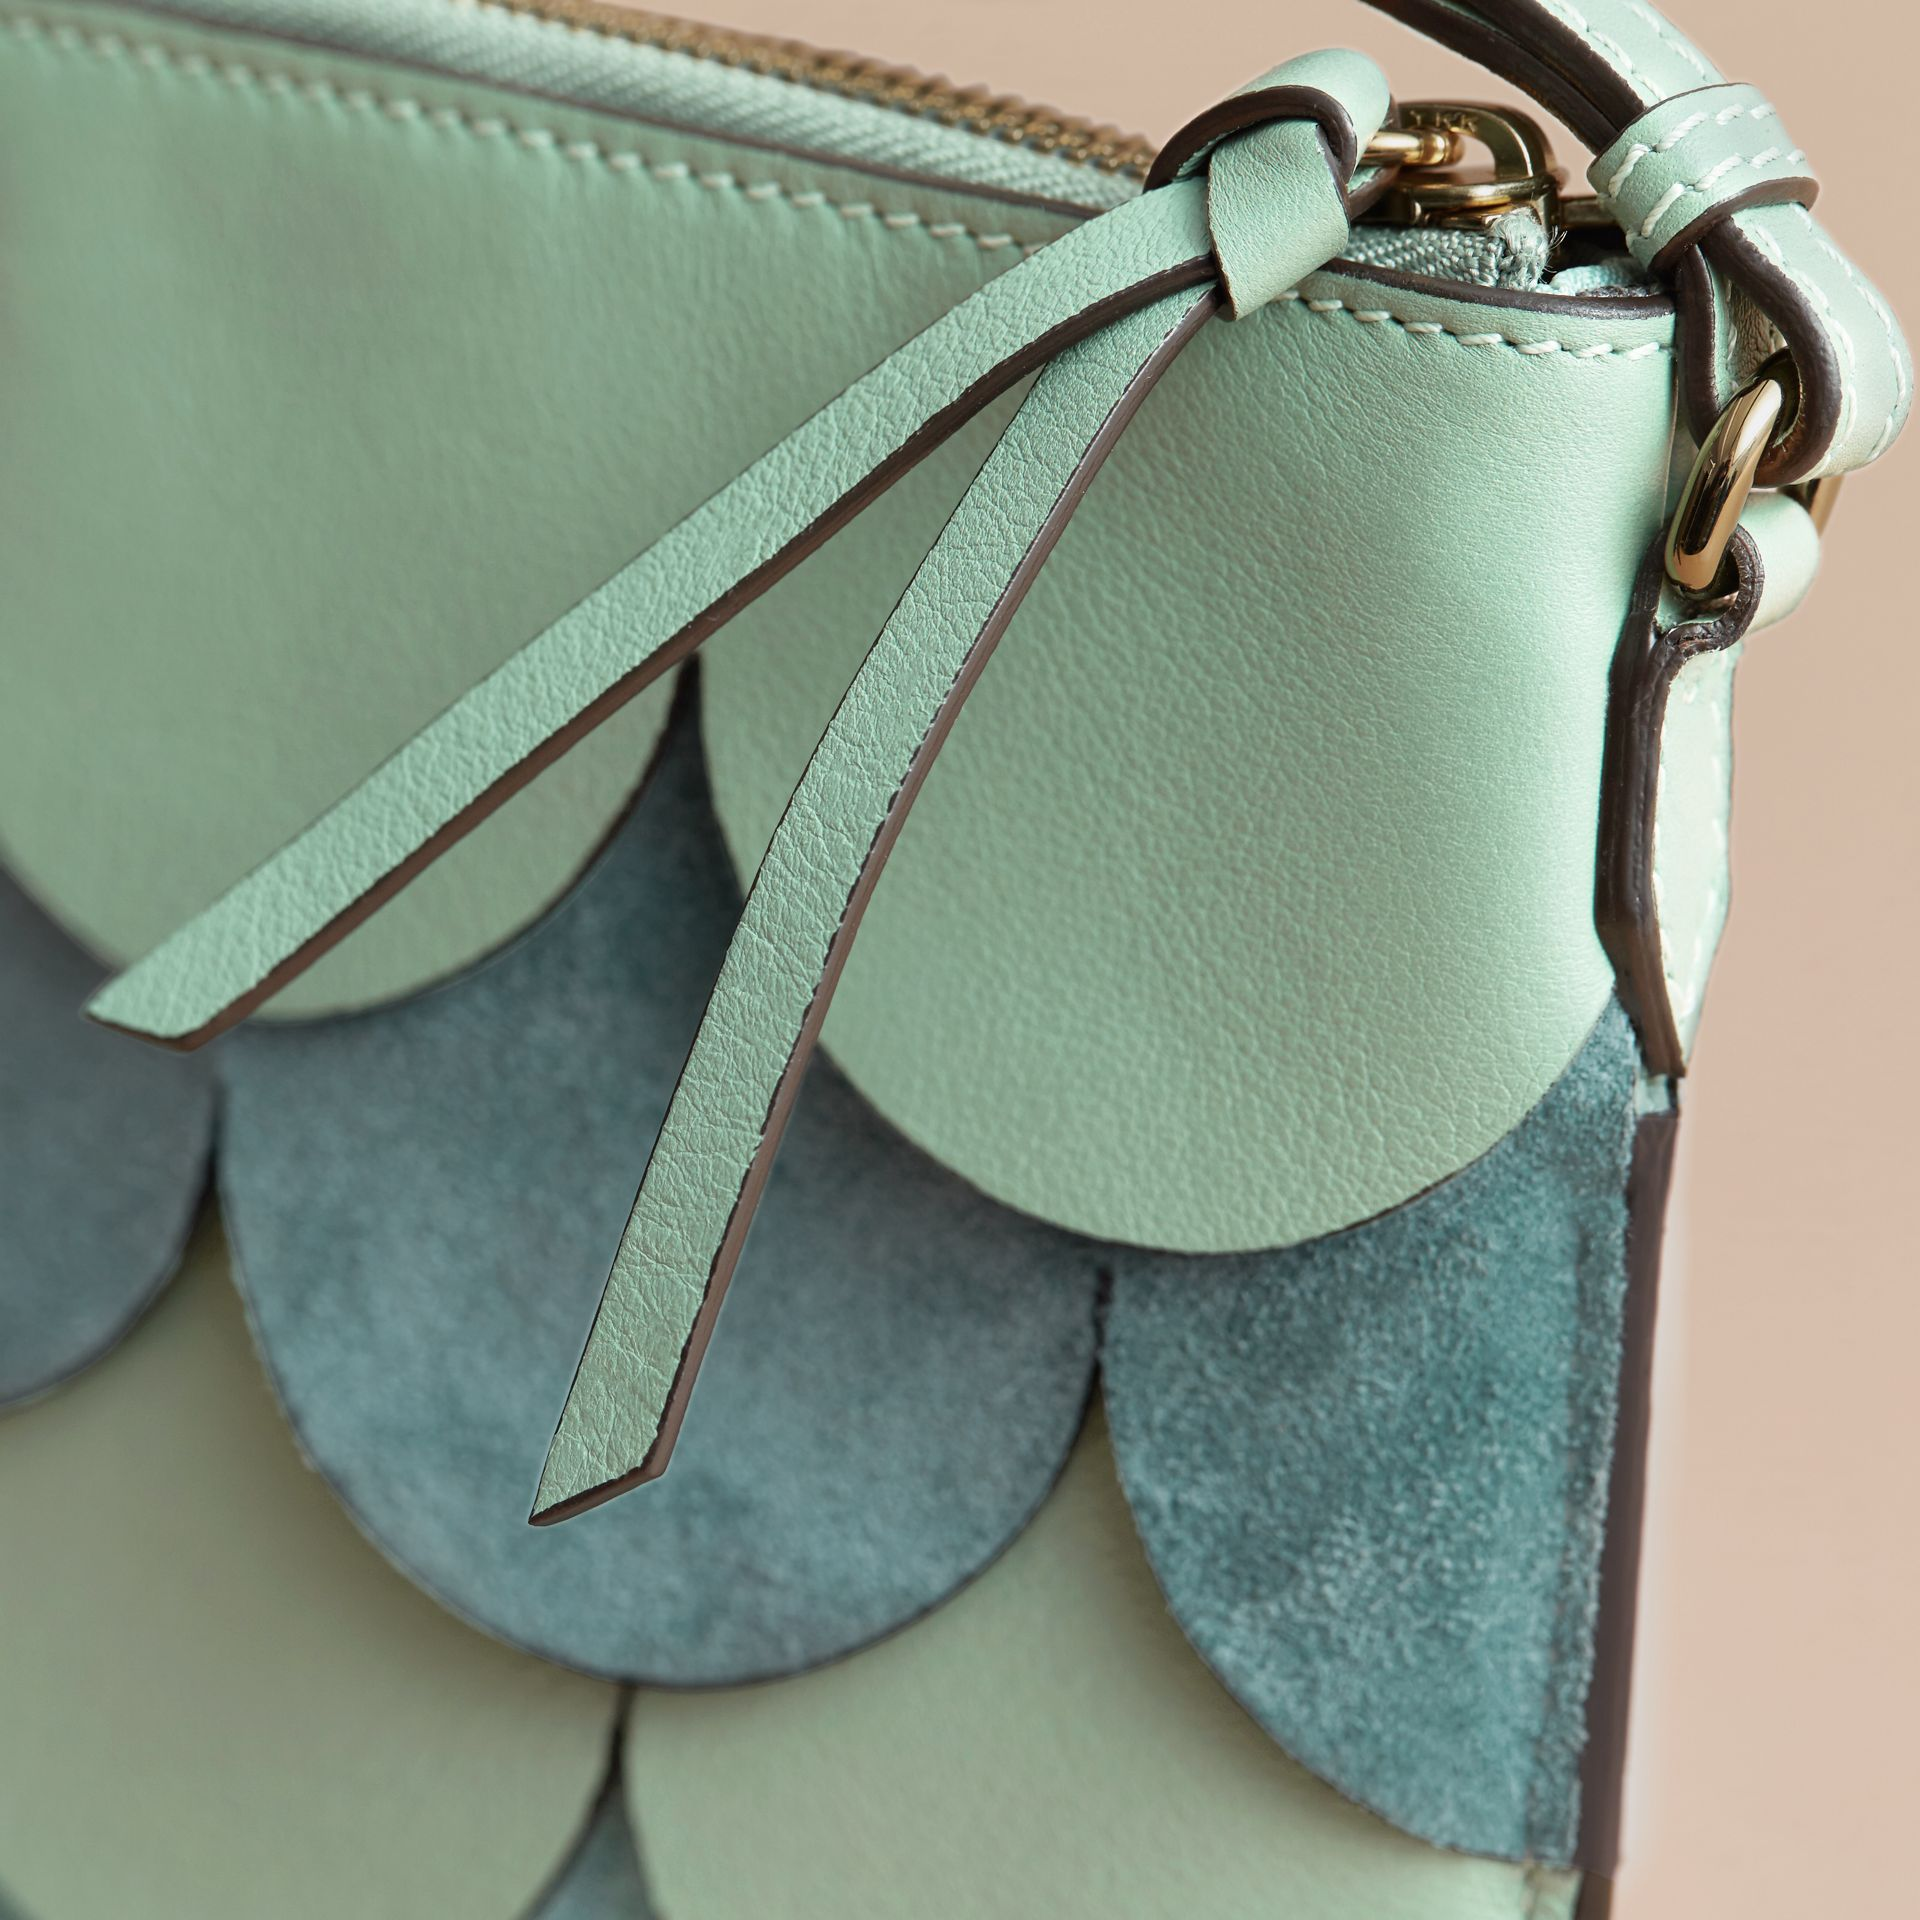 Two-tone Scalloped Leather and Suede Clutch Bag in Celadon Green - Women | Burberry Singapore - gallery image 2